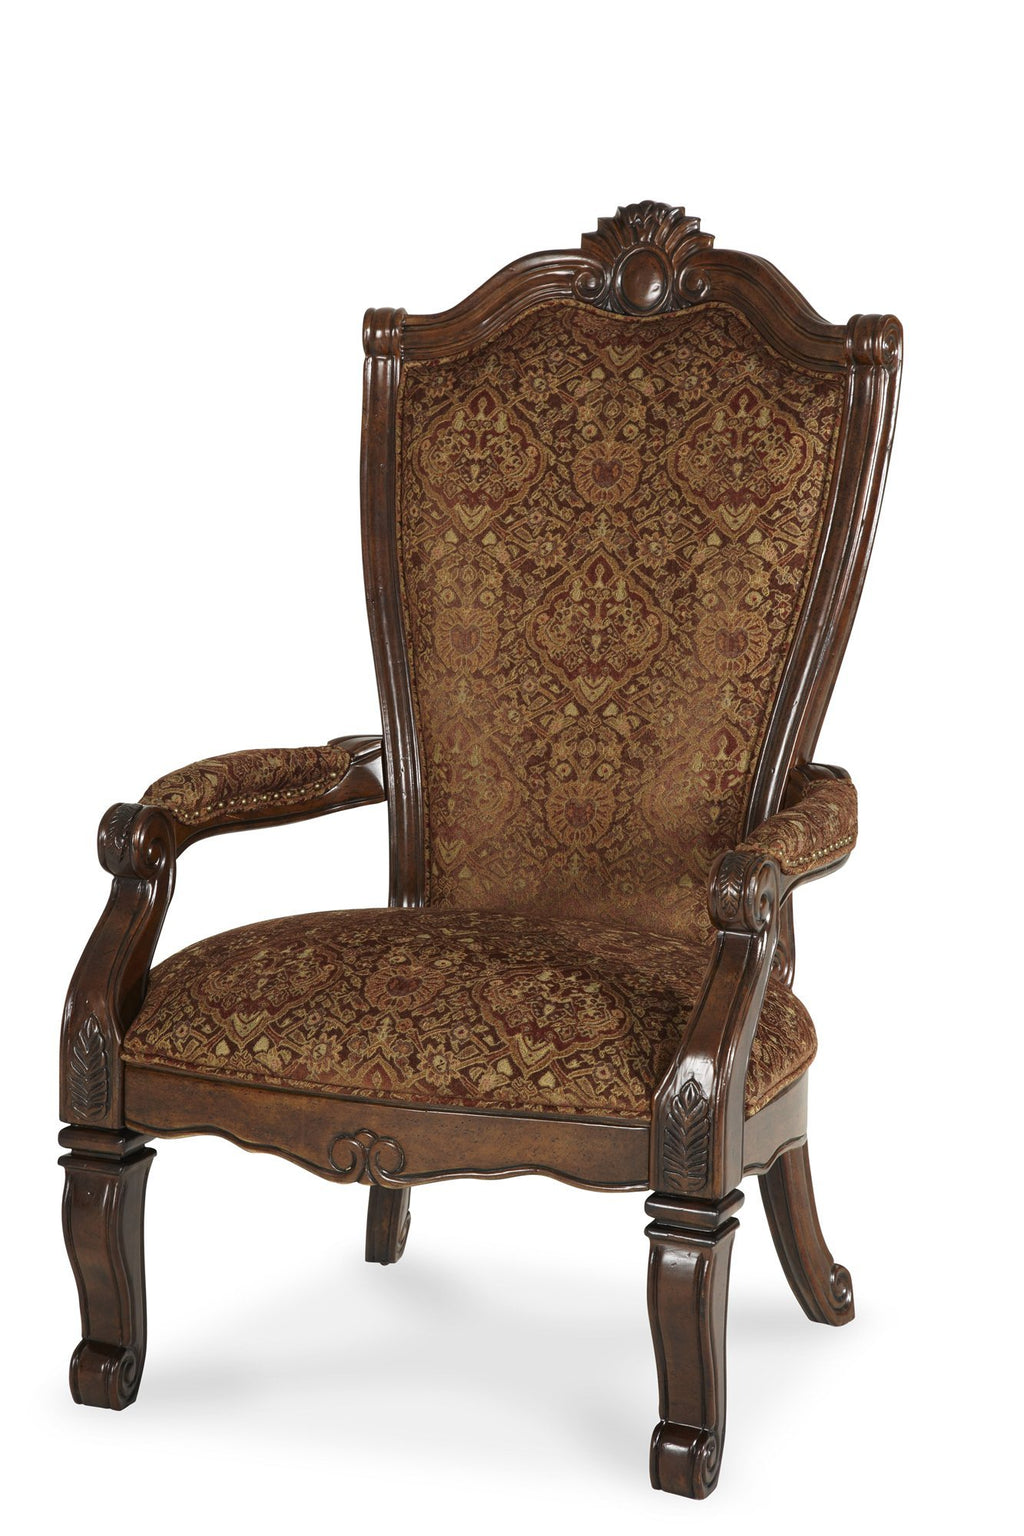 Aico Amini Windsor Court 1 Arm Chair in Vintage Fruitwood